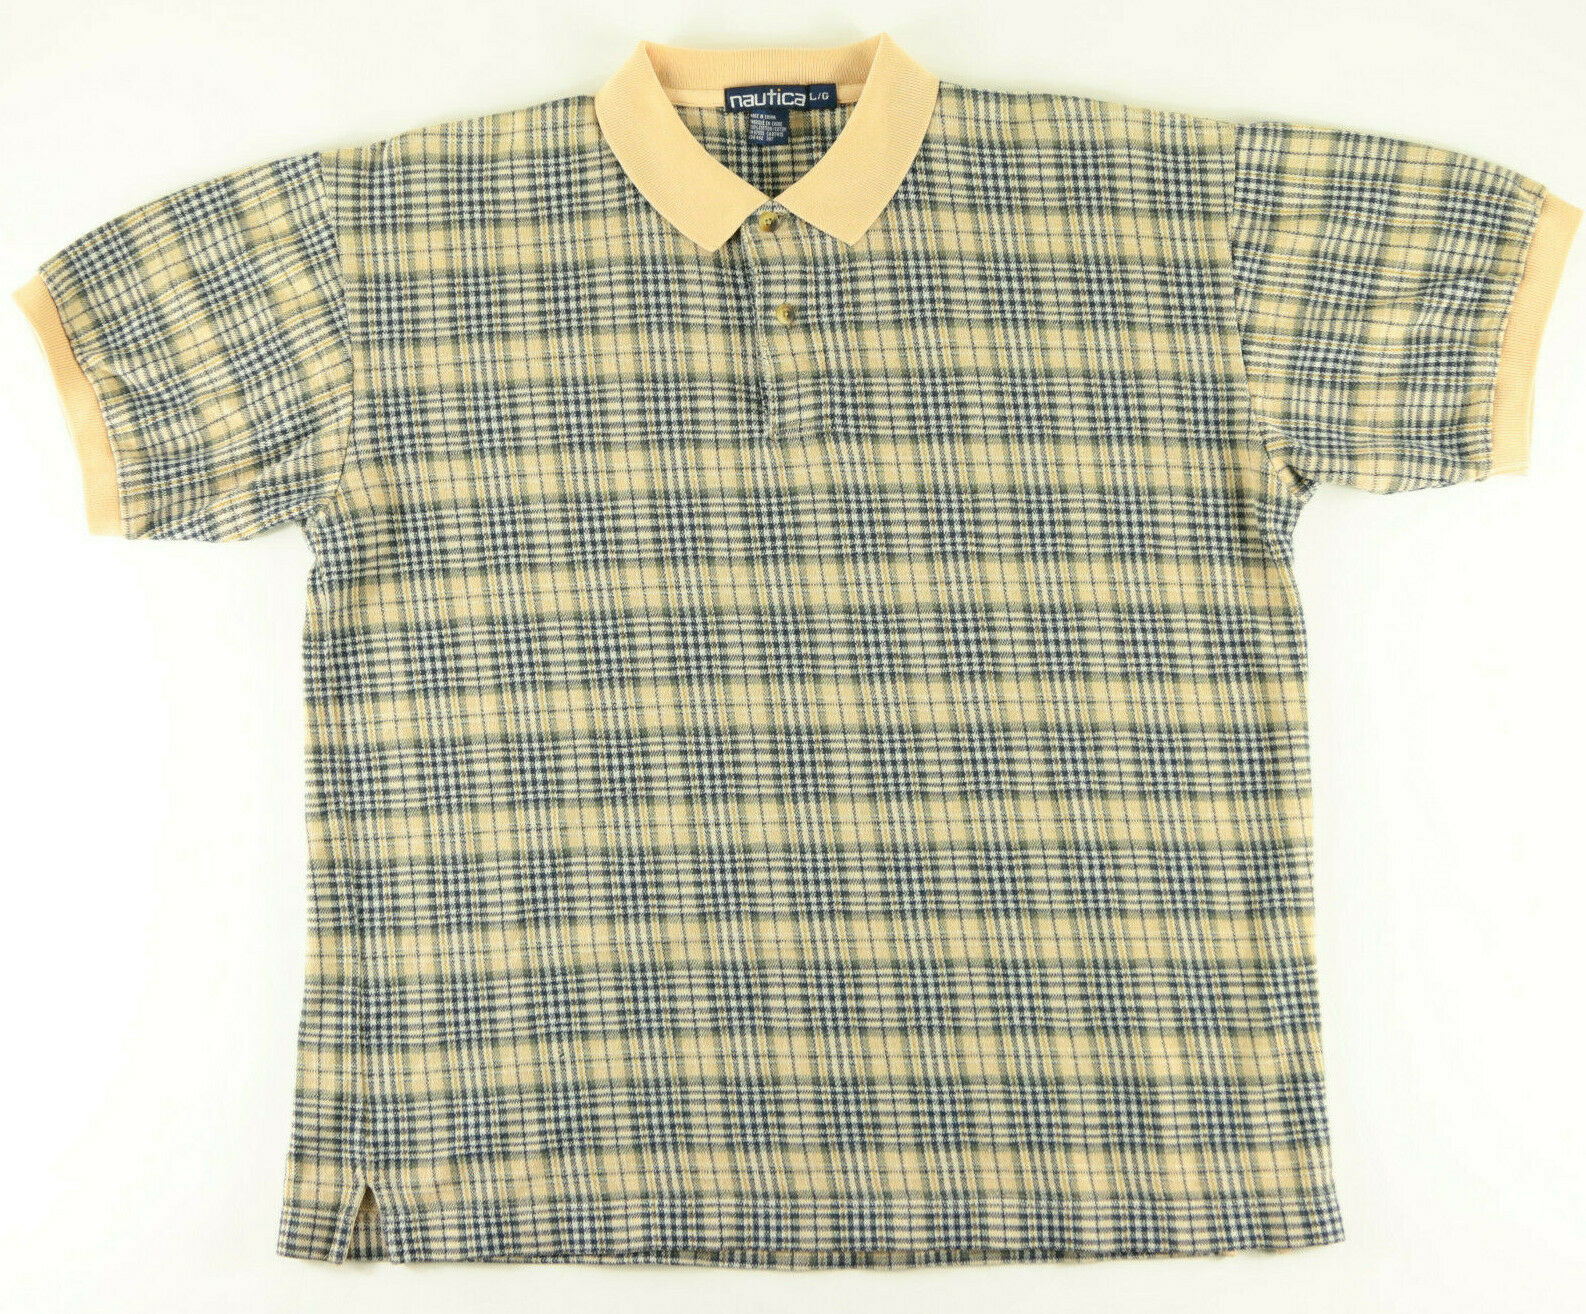 NAUTICA POLO SHIRT SIZE LARGE BEIGE GRAY NAVY BLU… - image 6